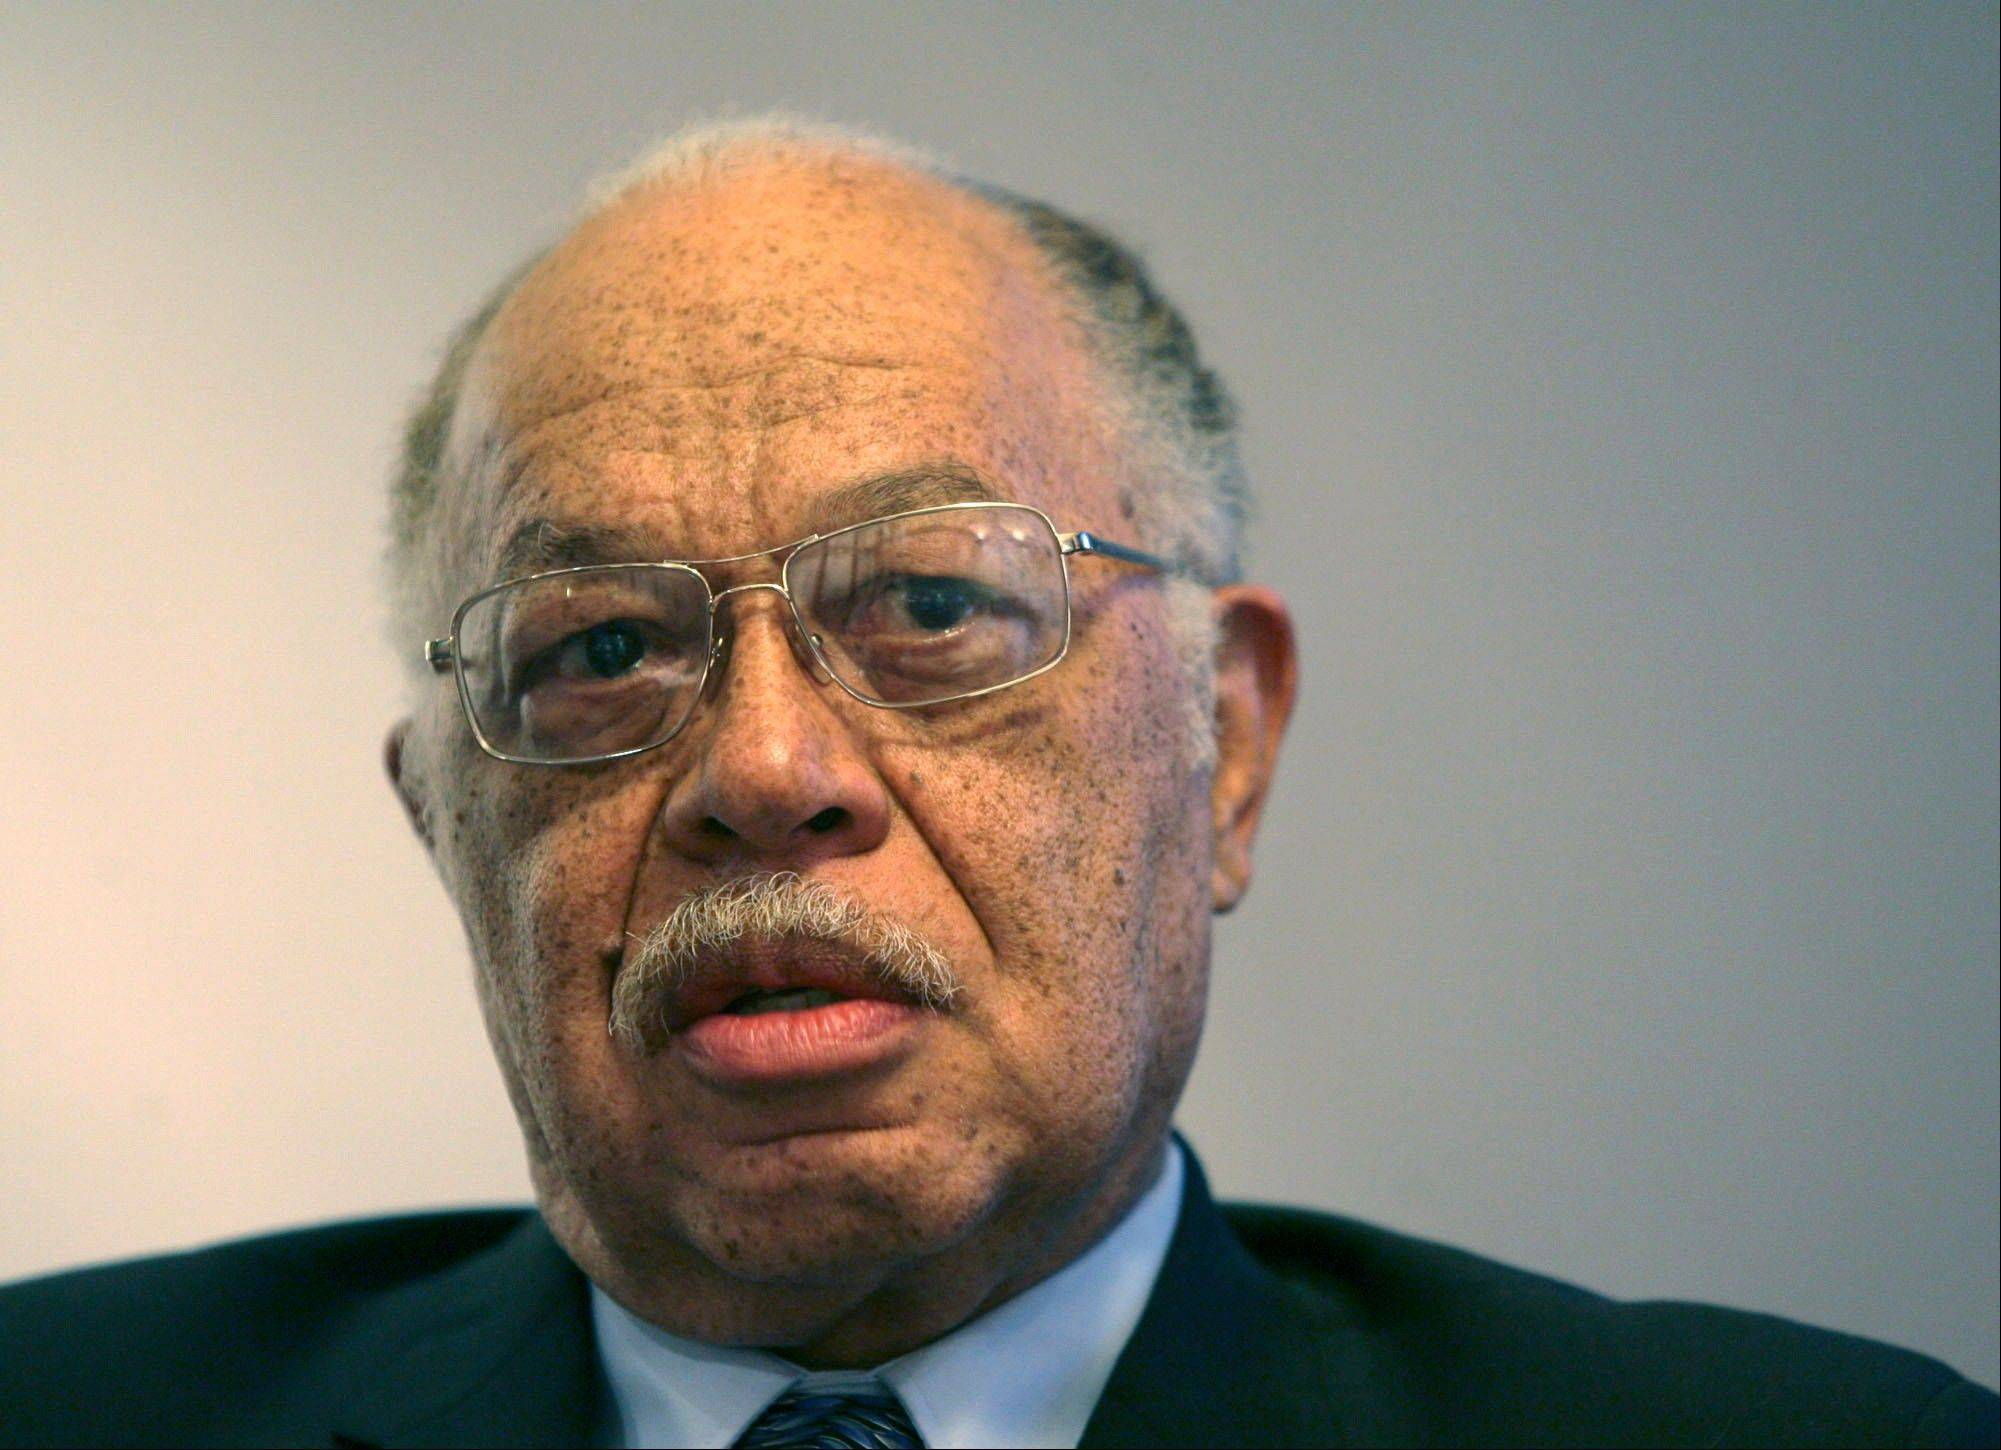 Dr. Kermit Gosnell is charged with killing a patient and four babies.